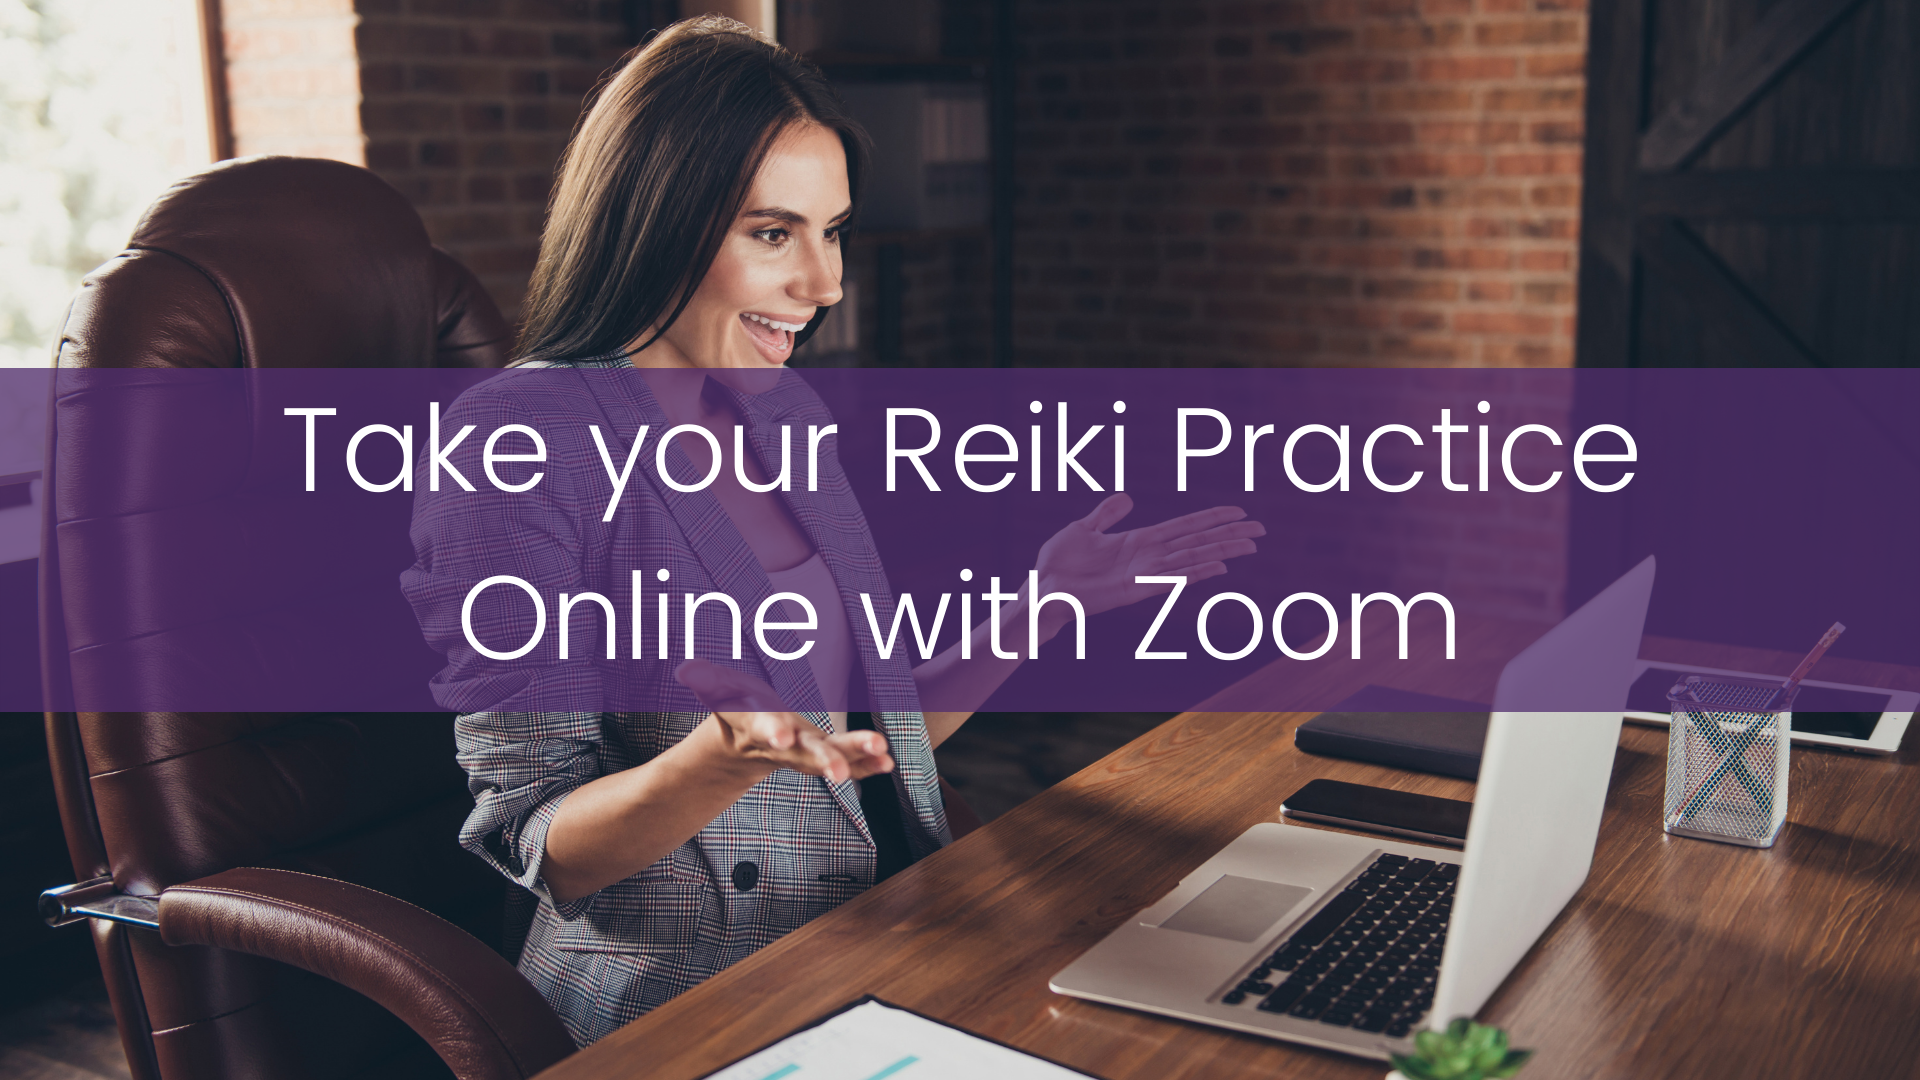 Take your Reiki Practice Online with Zoom